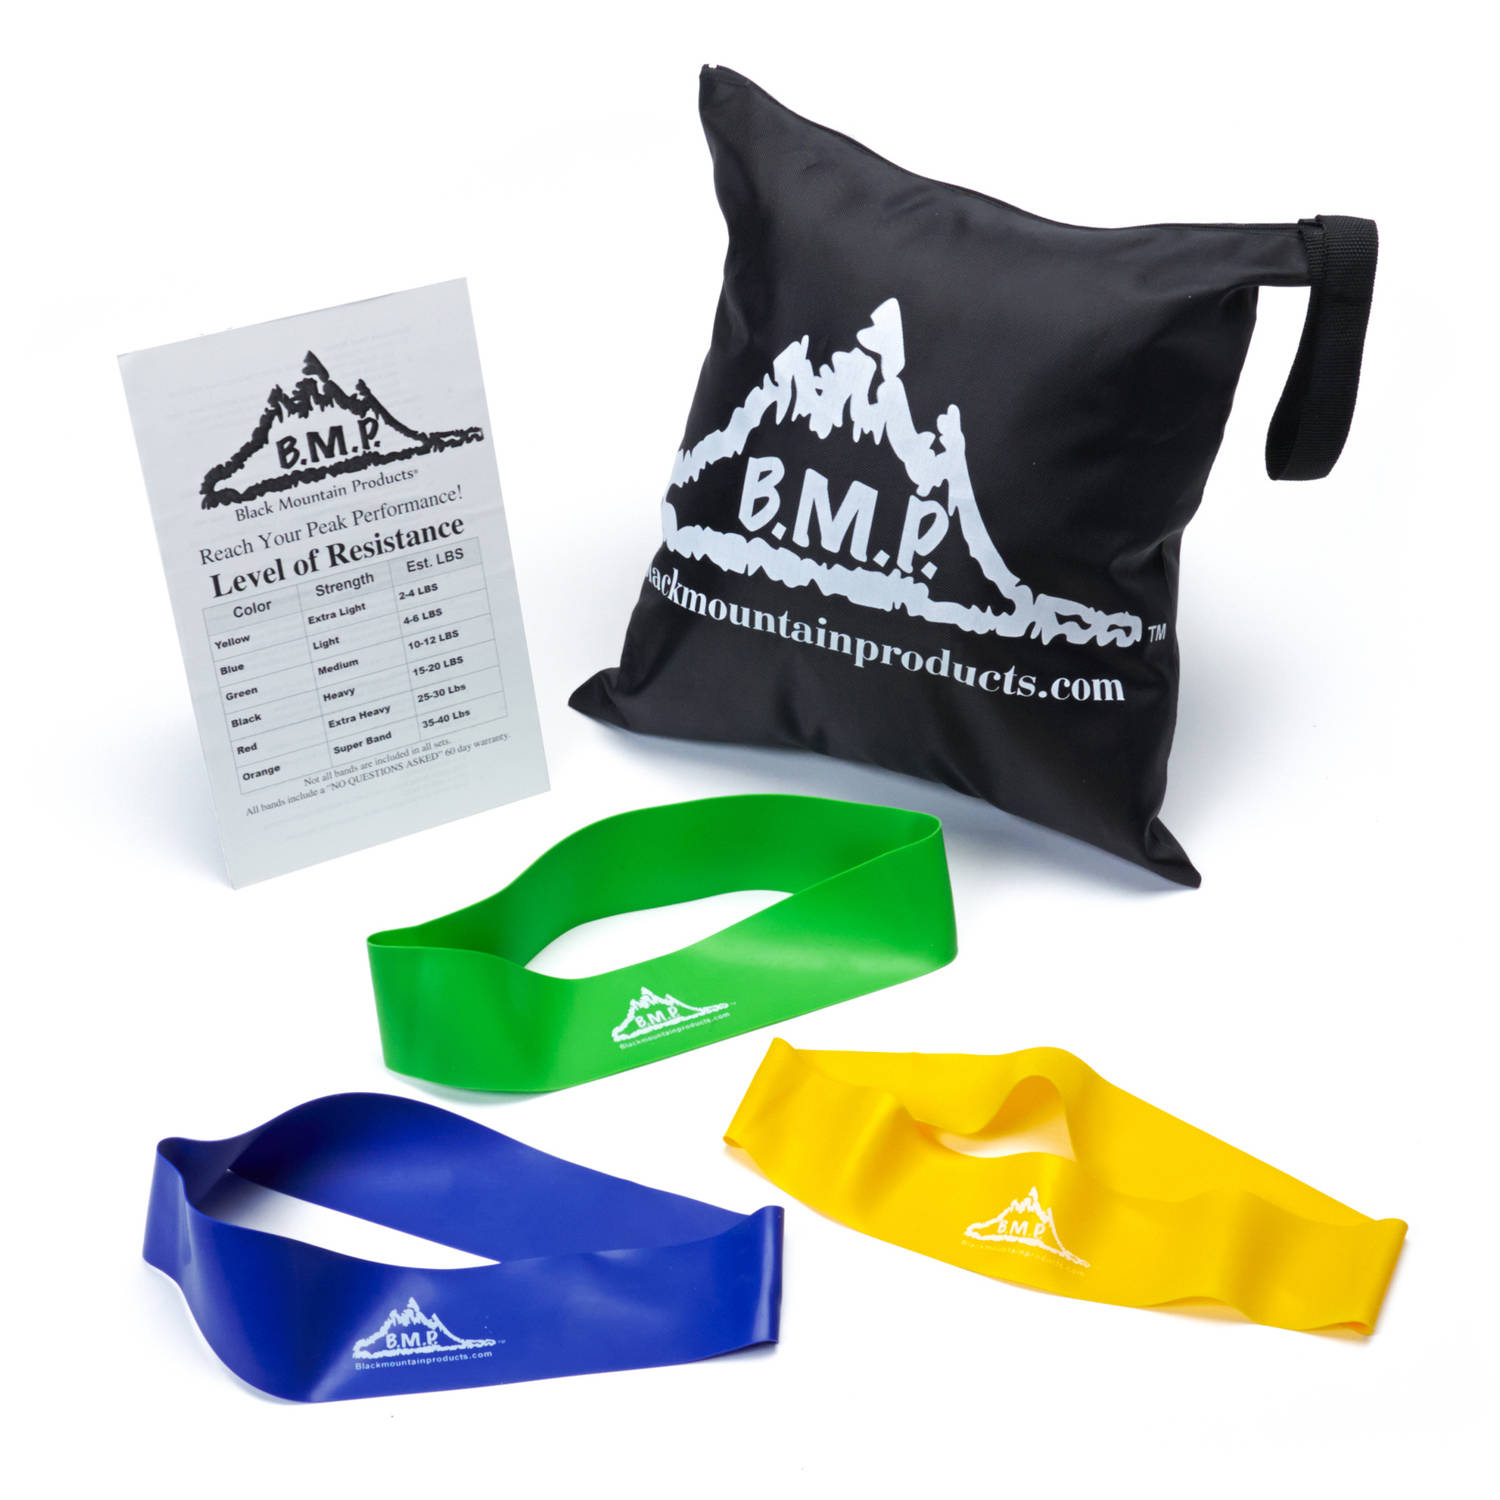 Black Mountain Products Resistance Loop Bands Set of 3 with Starter Guide and Carrying Bag